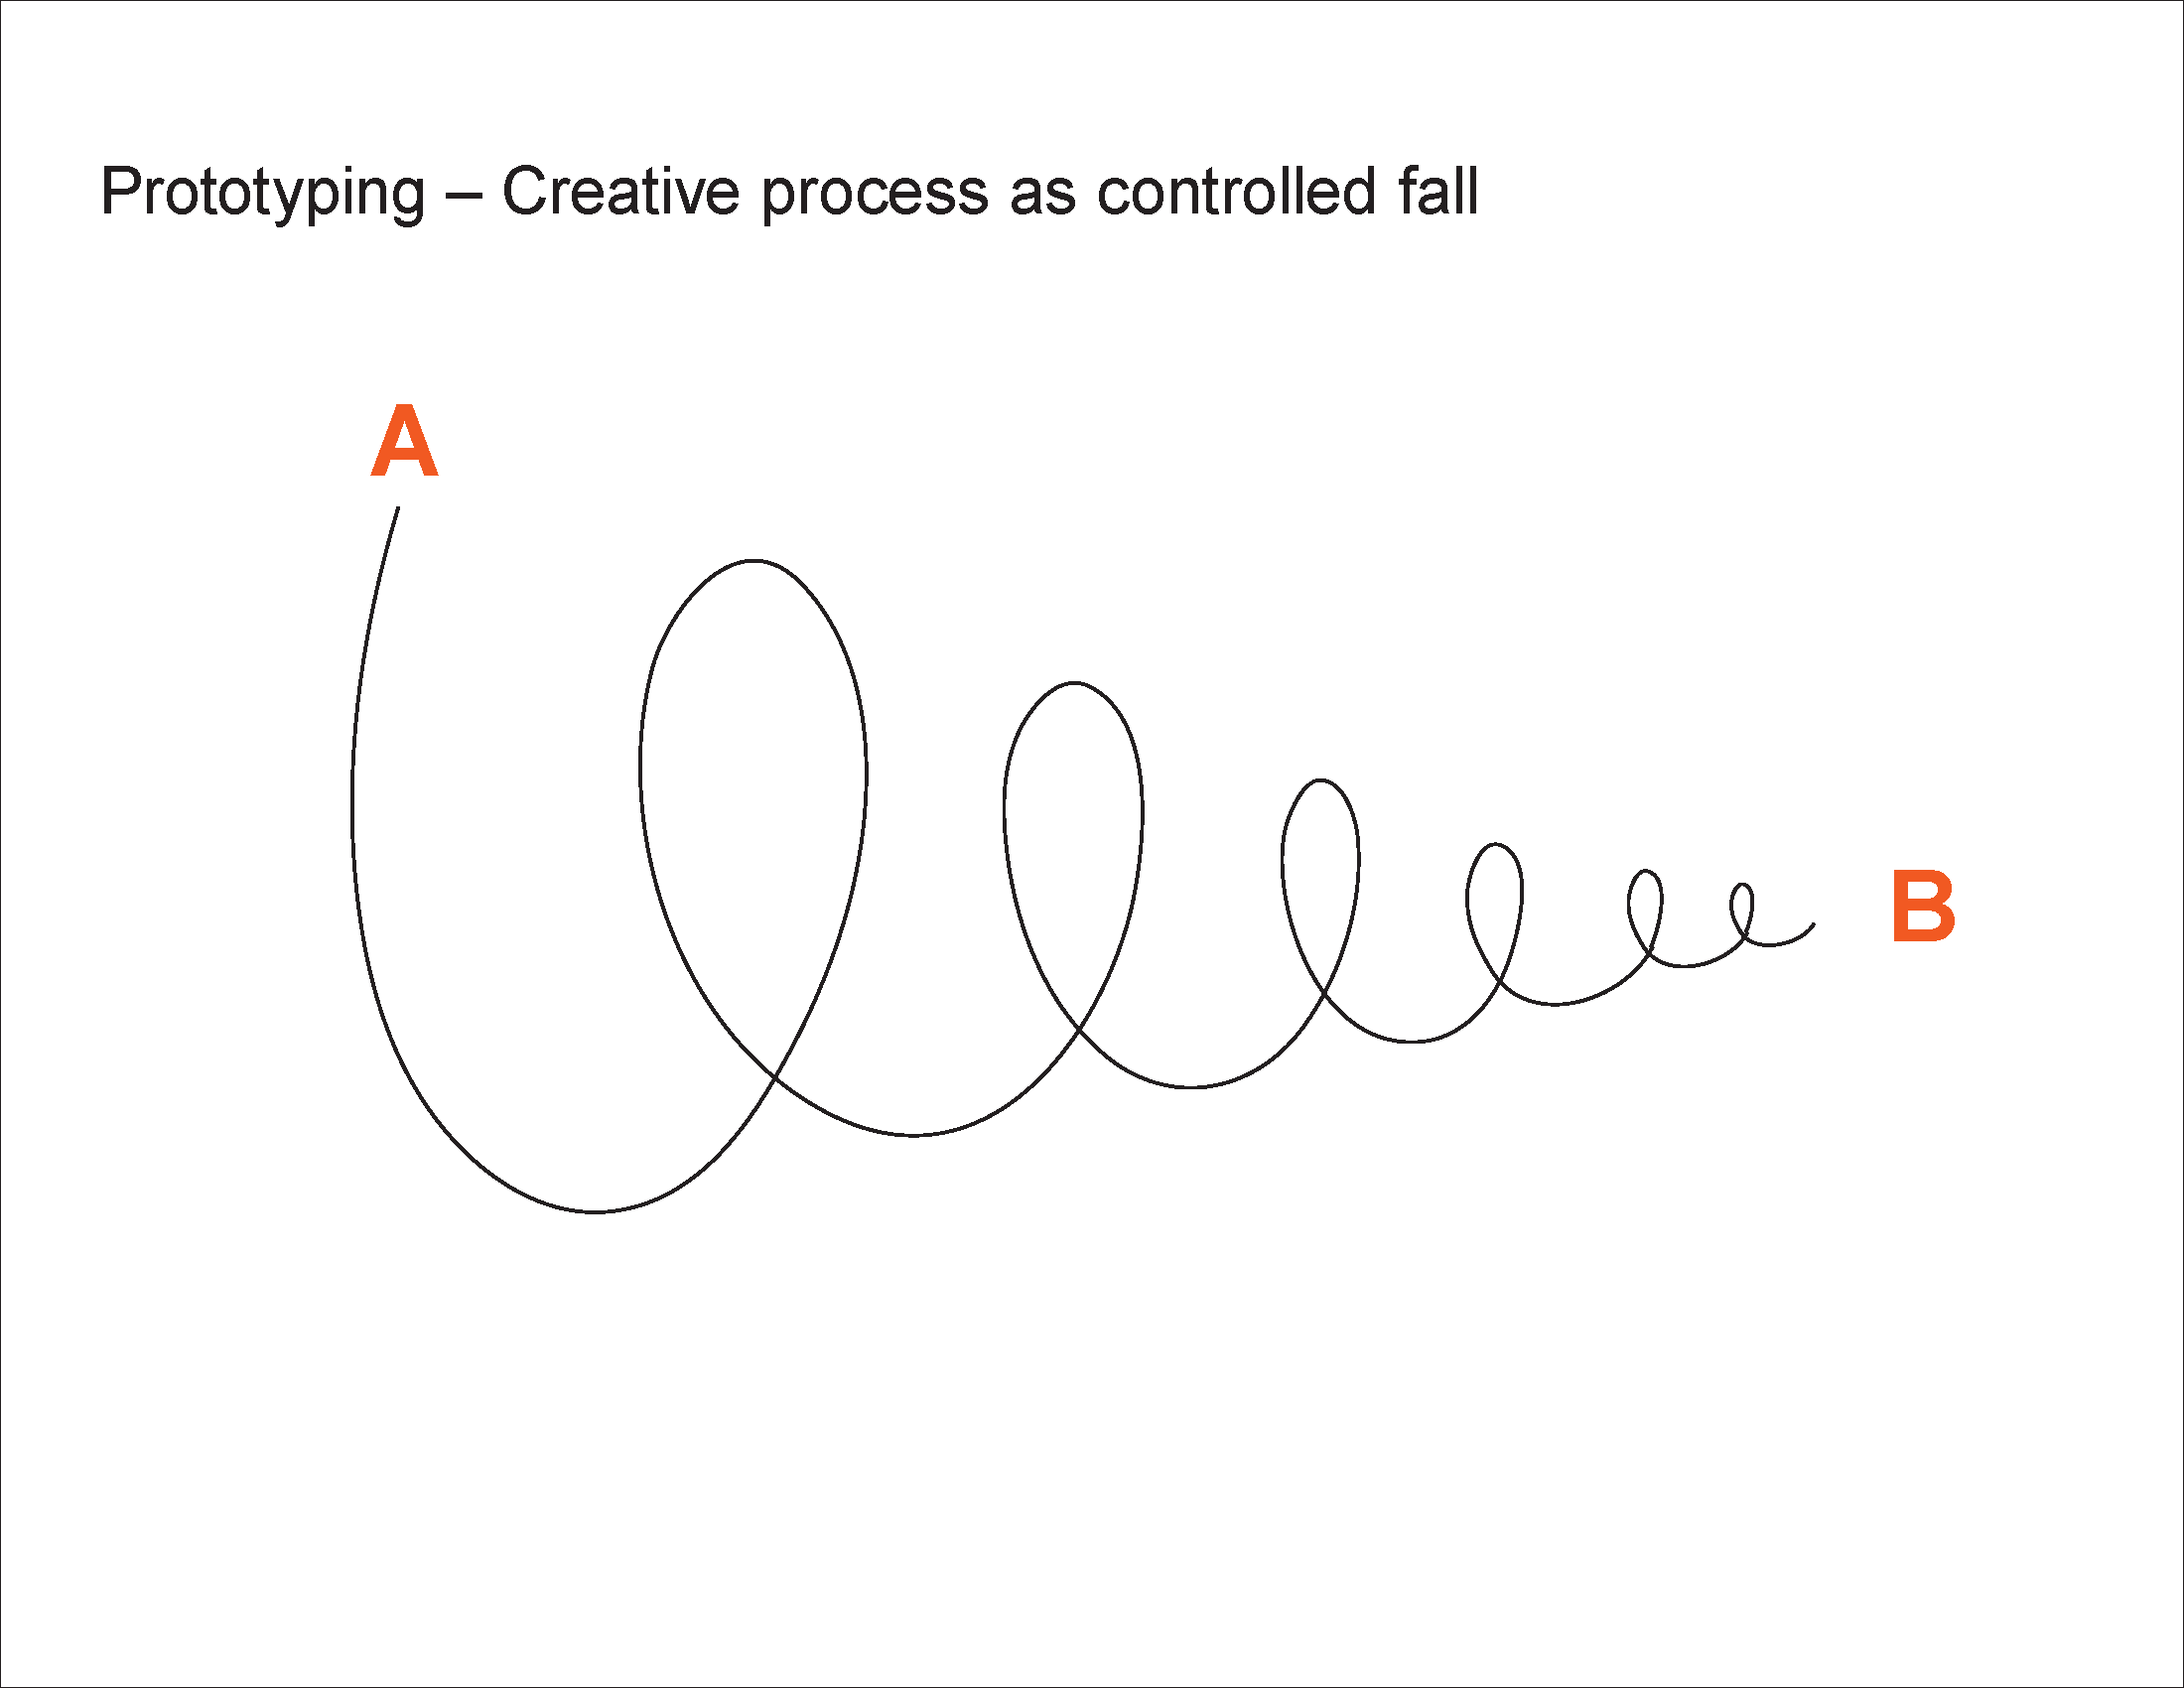 Prototyping - Creative process as controlled fall